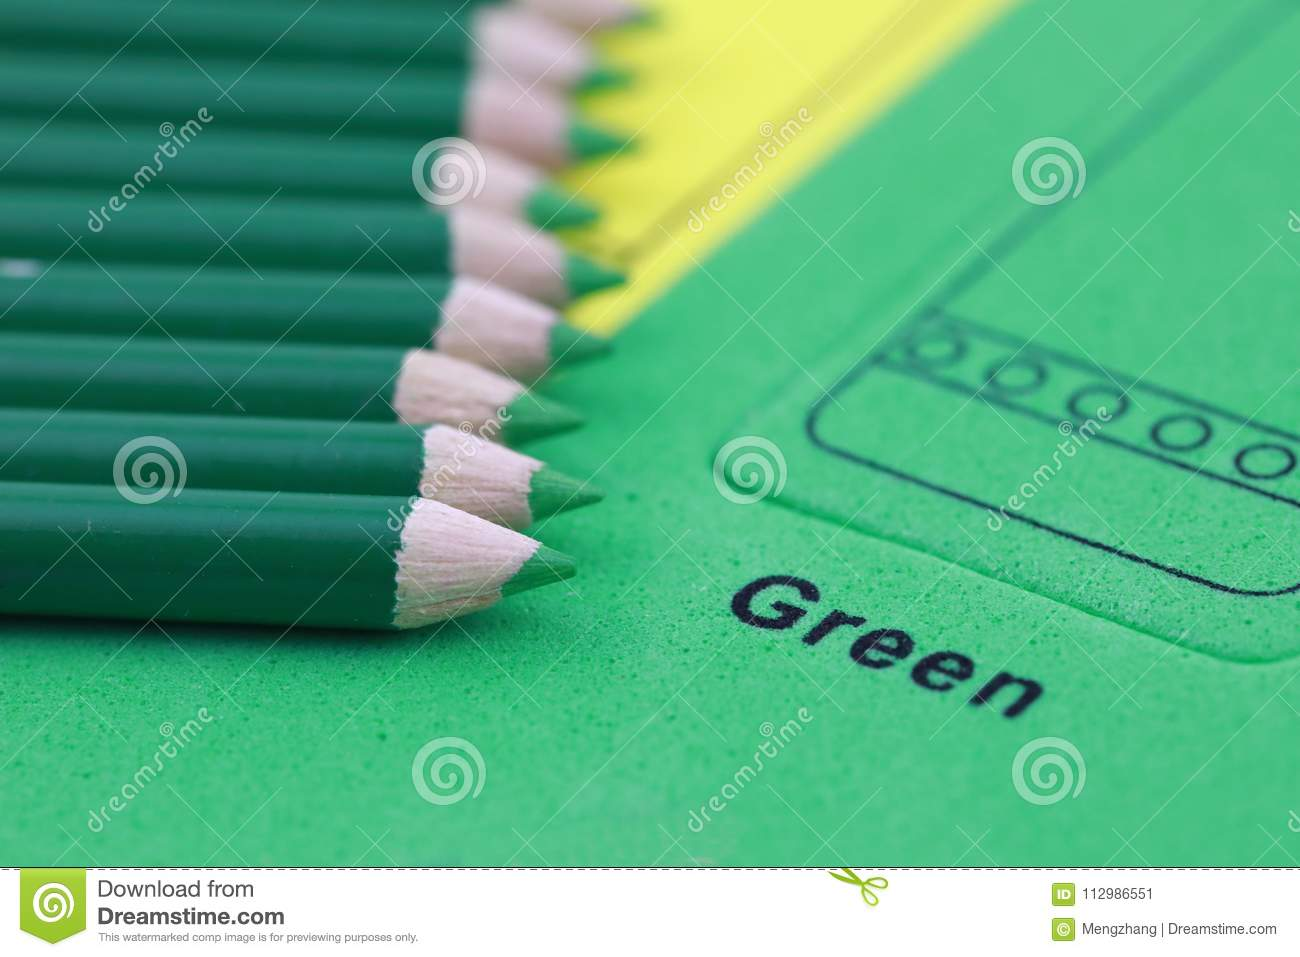 green pencil crayon